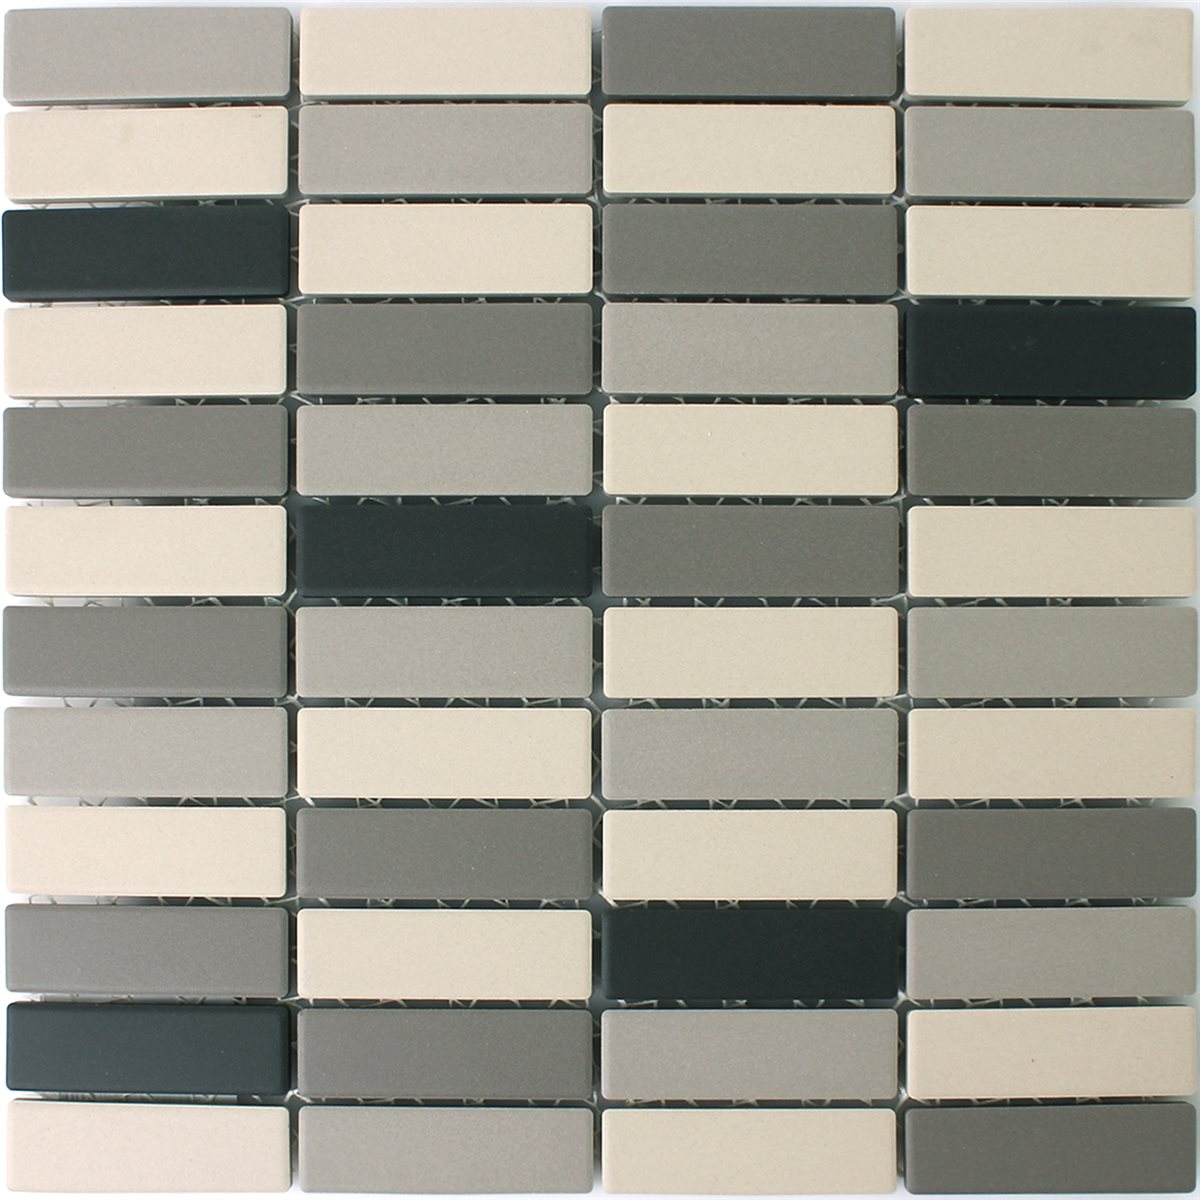 Ceramic Mosaic Tiles Multimix Blue Grey Tm33334